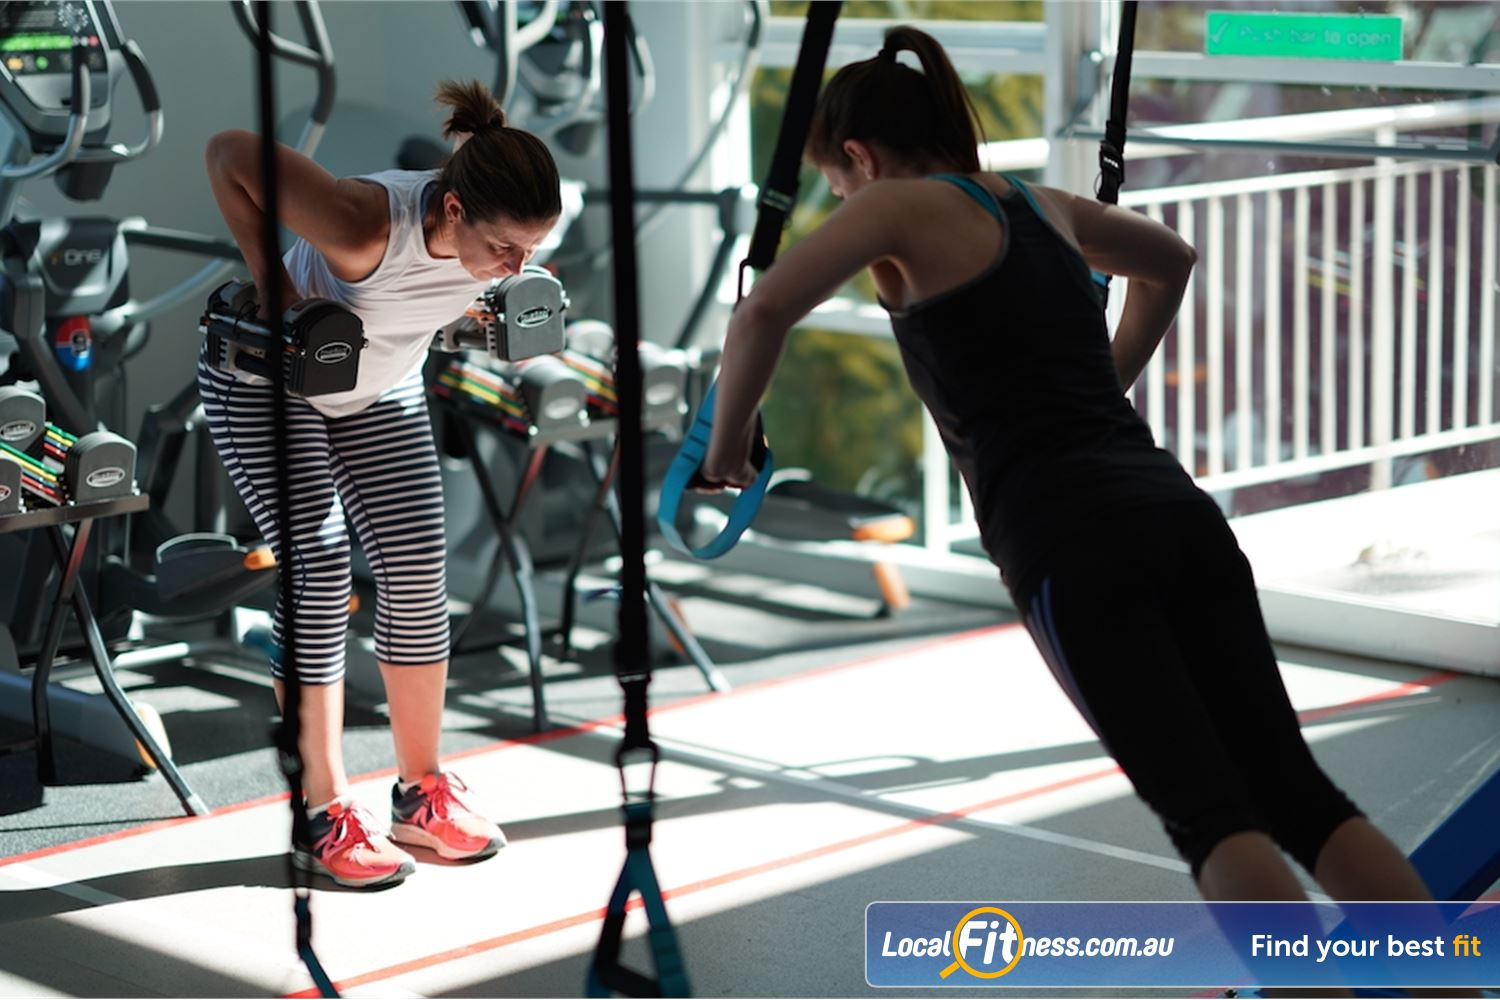 North Ryde Fitness & Aquatic Near Marsfield Our fitness classes cater for all levels of strength and fitness.